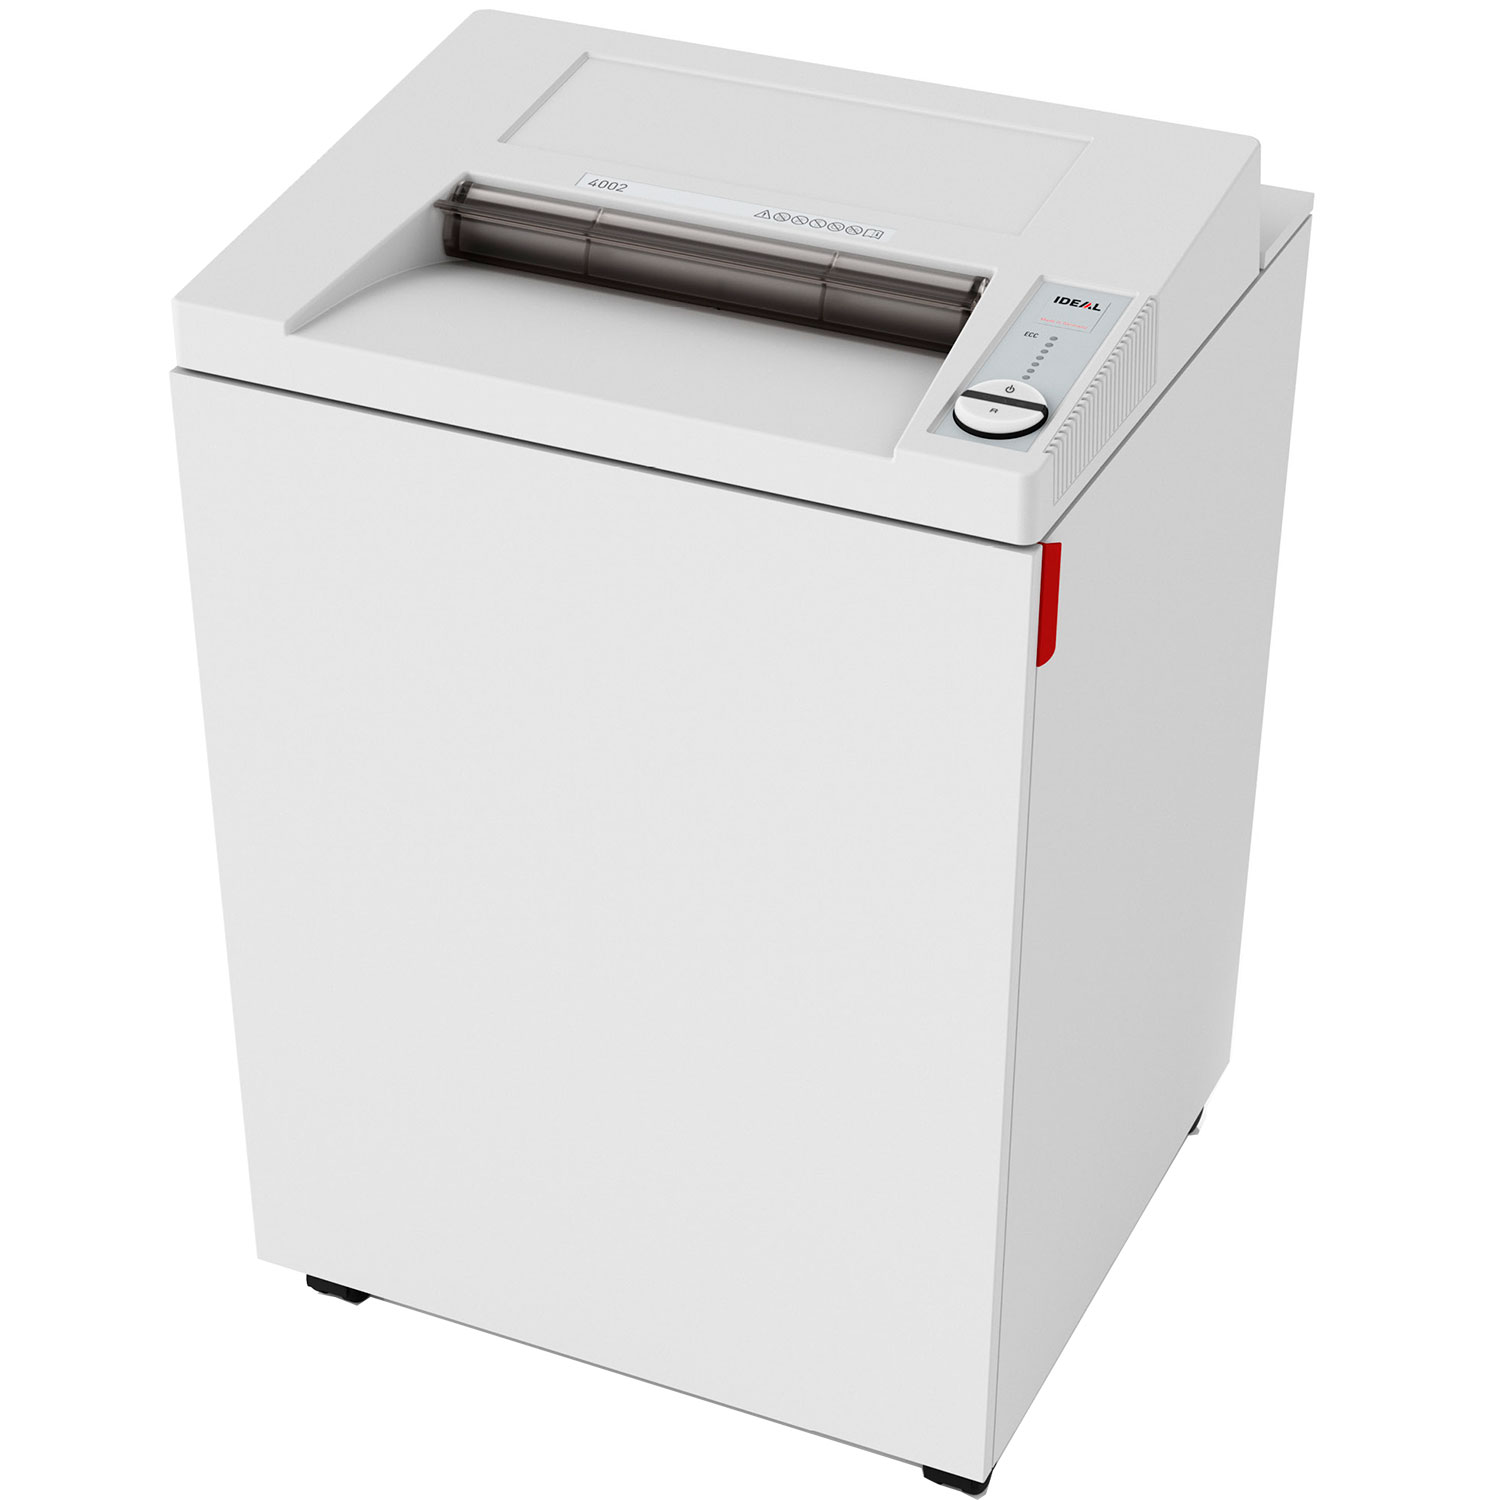 IDEAL 4002 Cross-Cut 4 x 40mm Paper Shredder